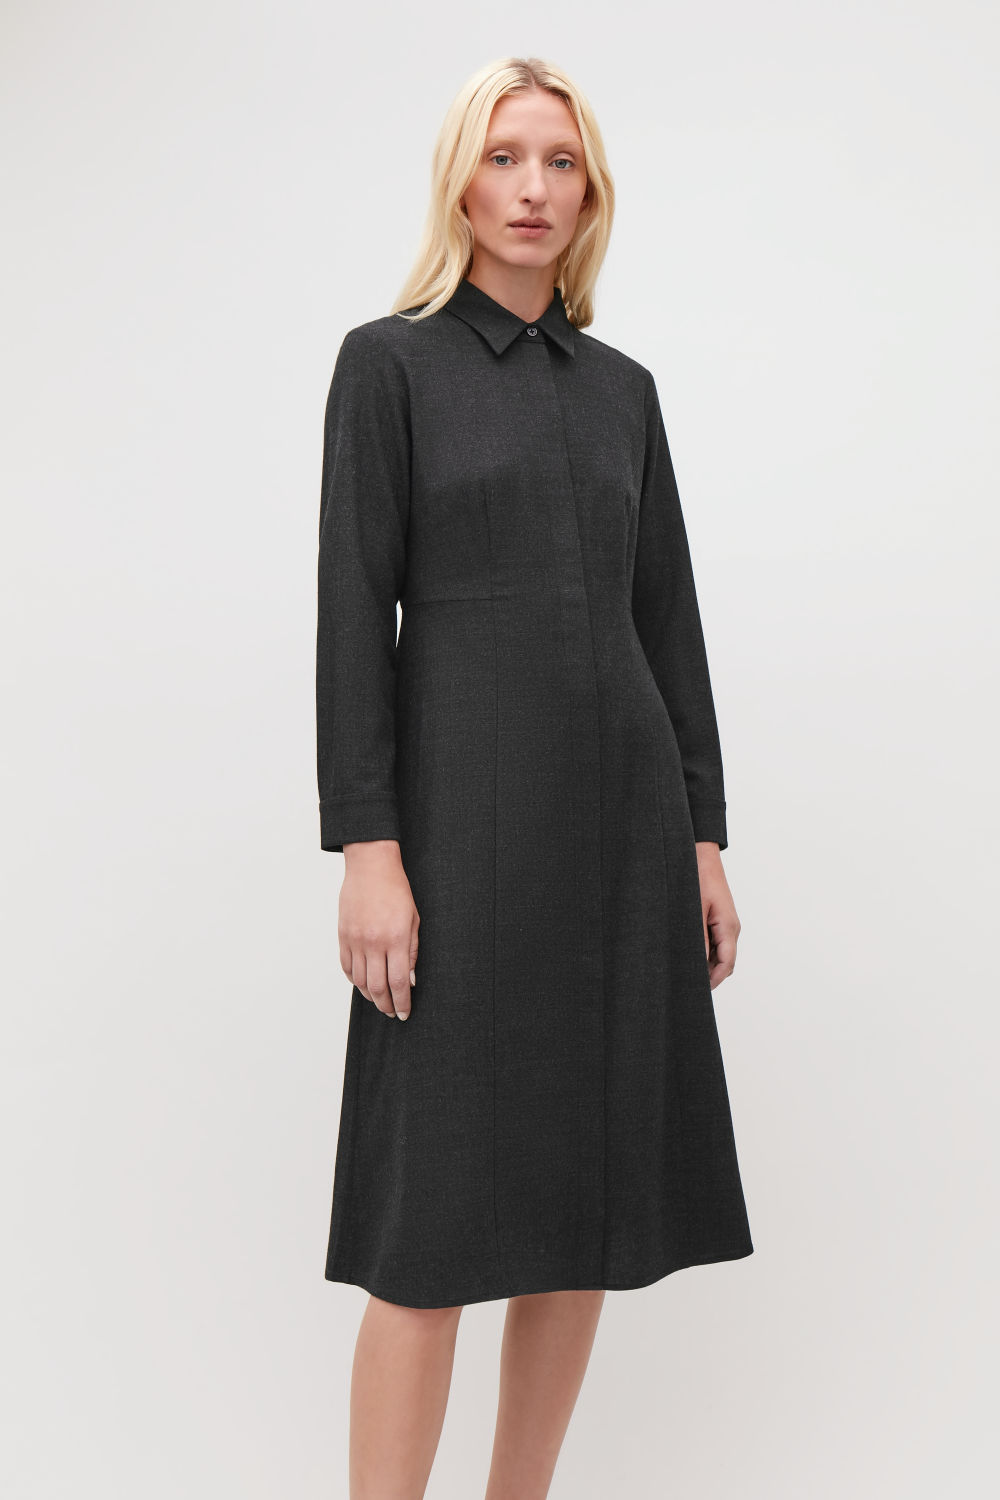 MID-LENGTH WOOL SHIRT DRESS